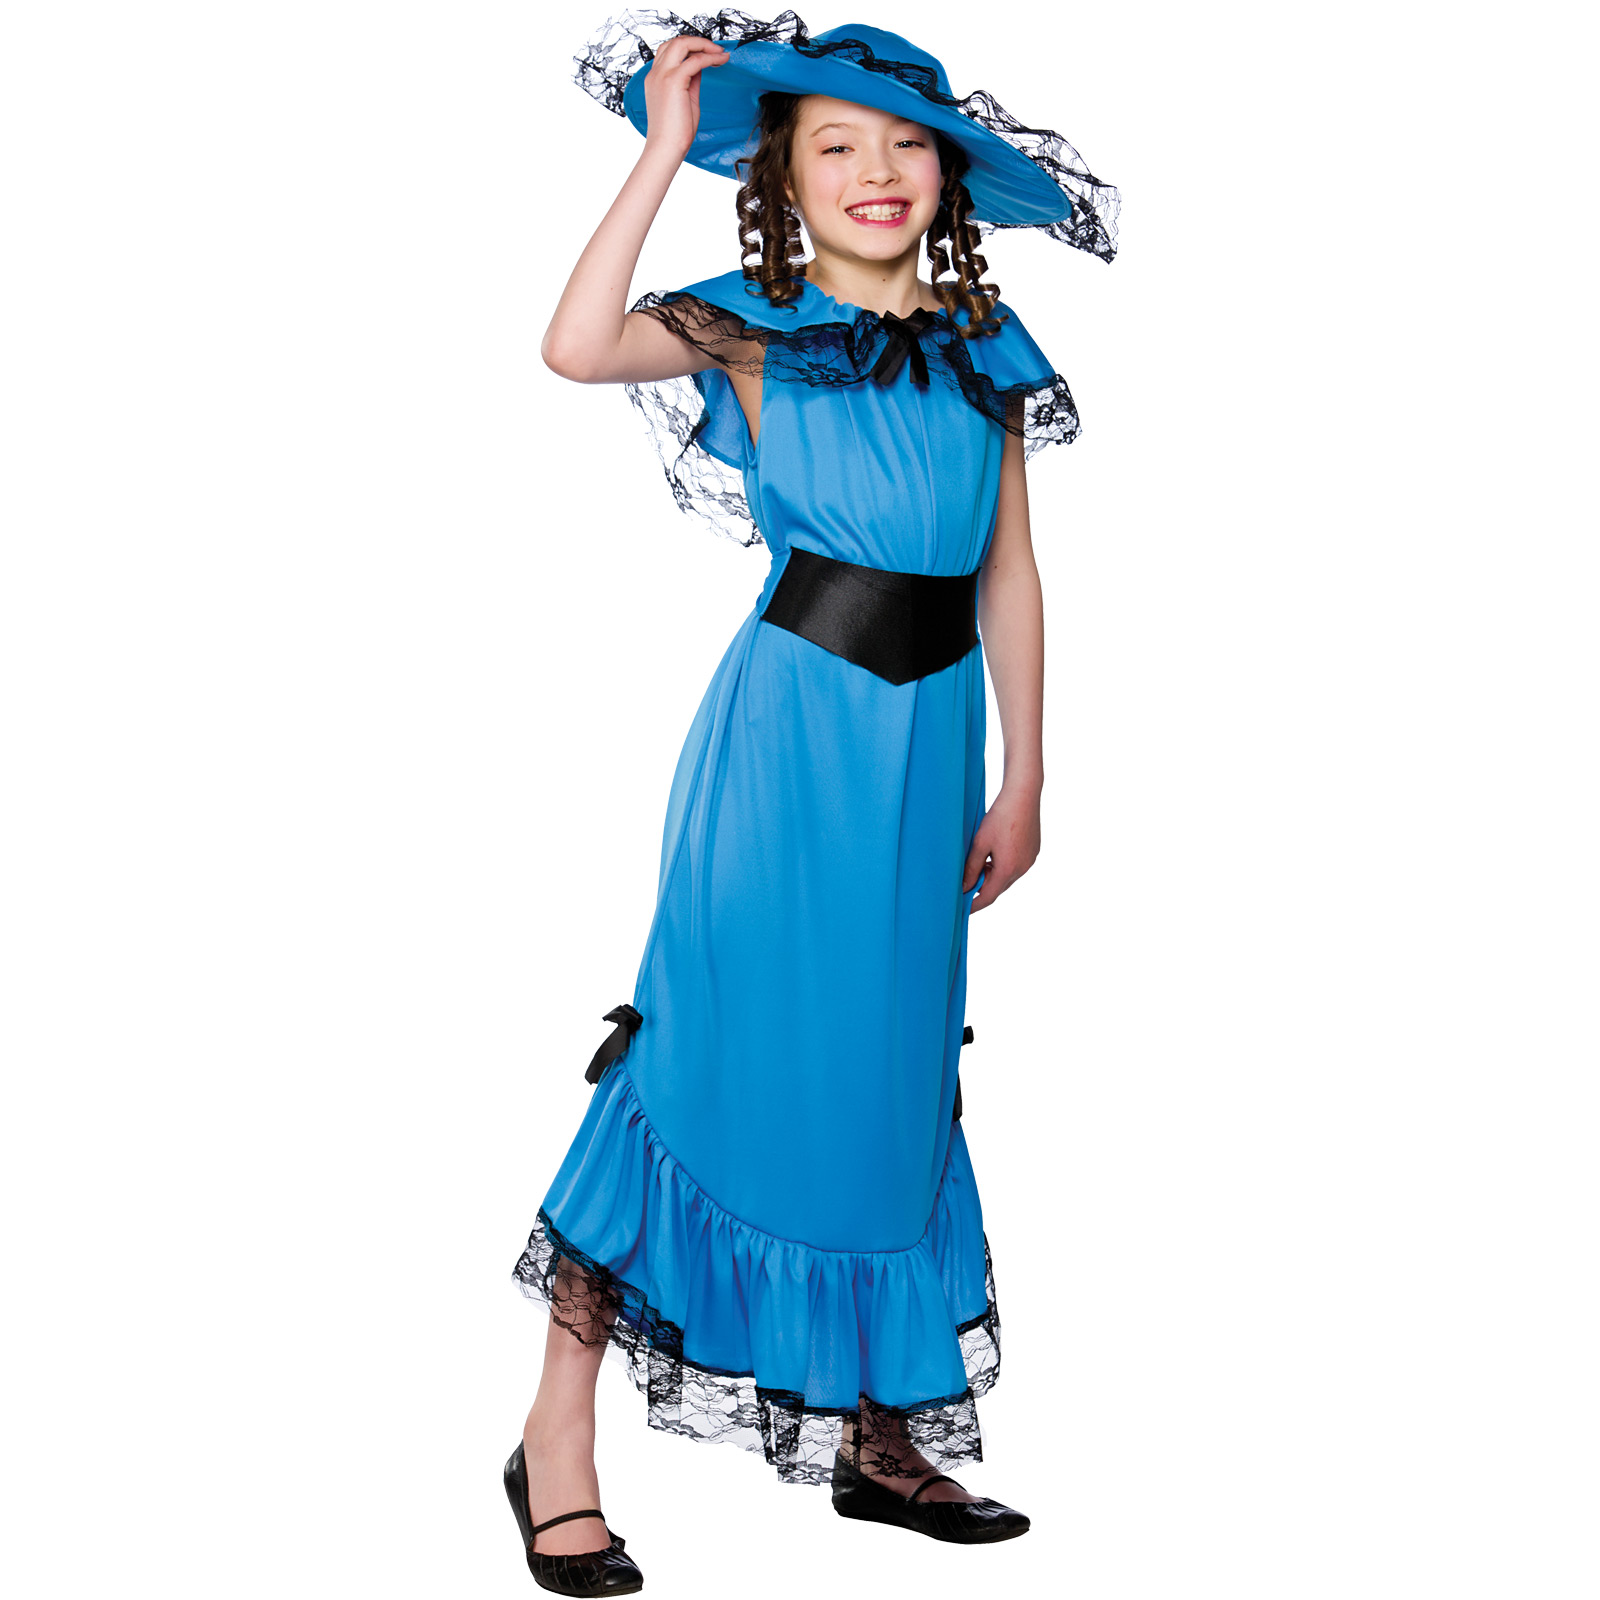 Victorian-Lady-Blue-Costume-For-Girls-Fancy-Dress-Up-Party-Halloween-Kids-Outfit